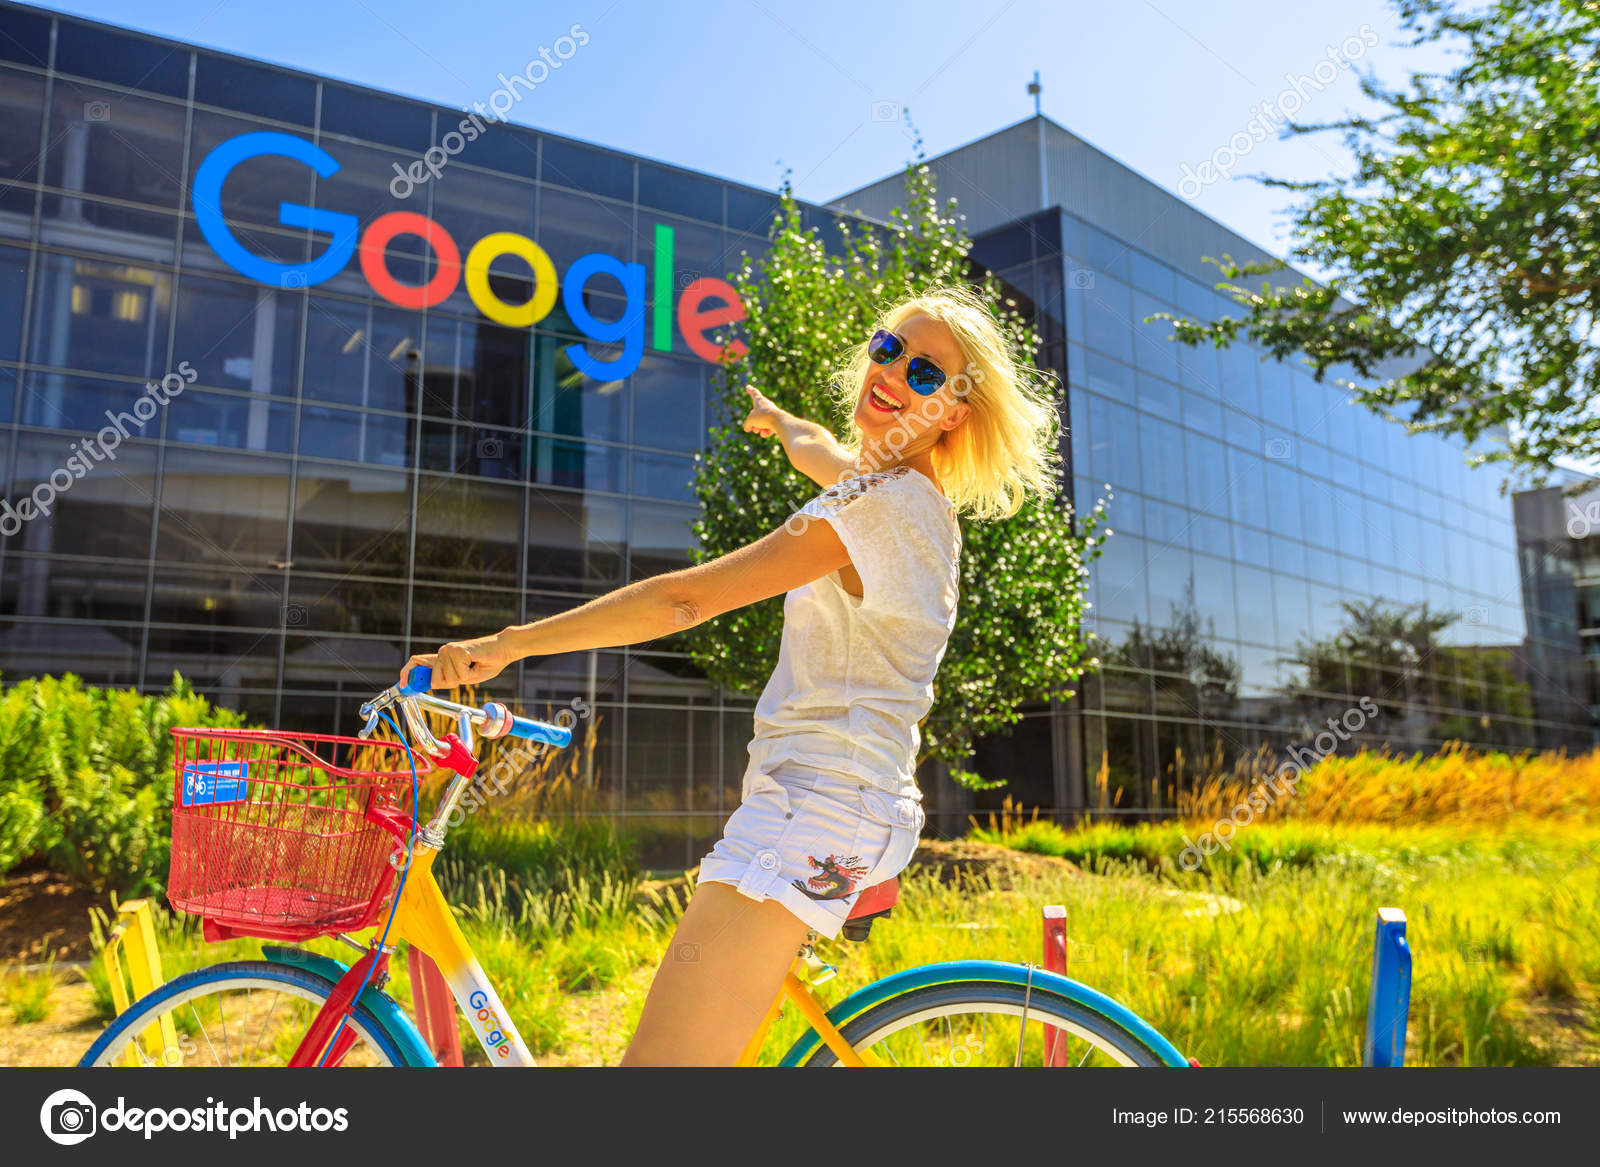 Communication on this topic: How to Visit Google Headquarters, how-to-visit-google-headquarters/